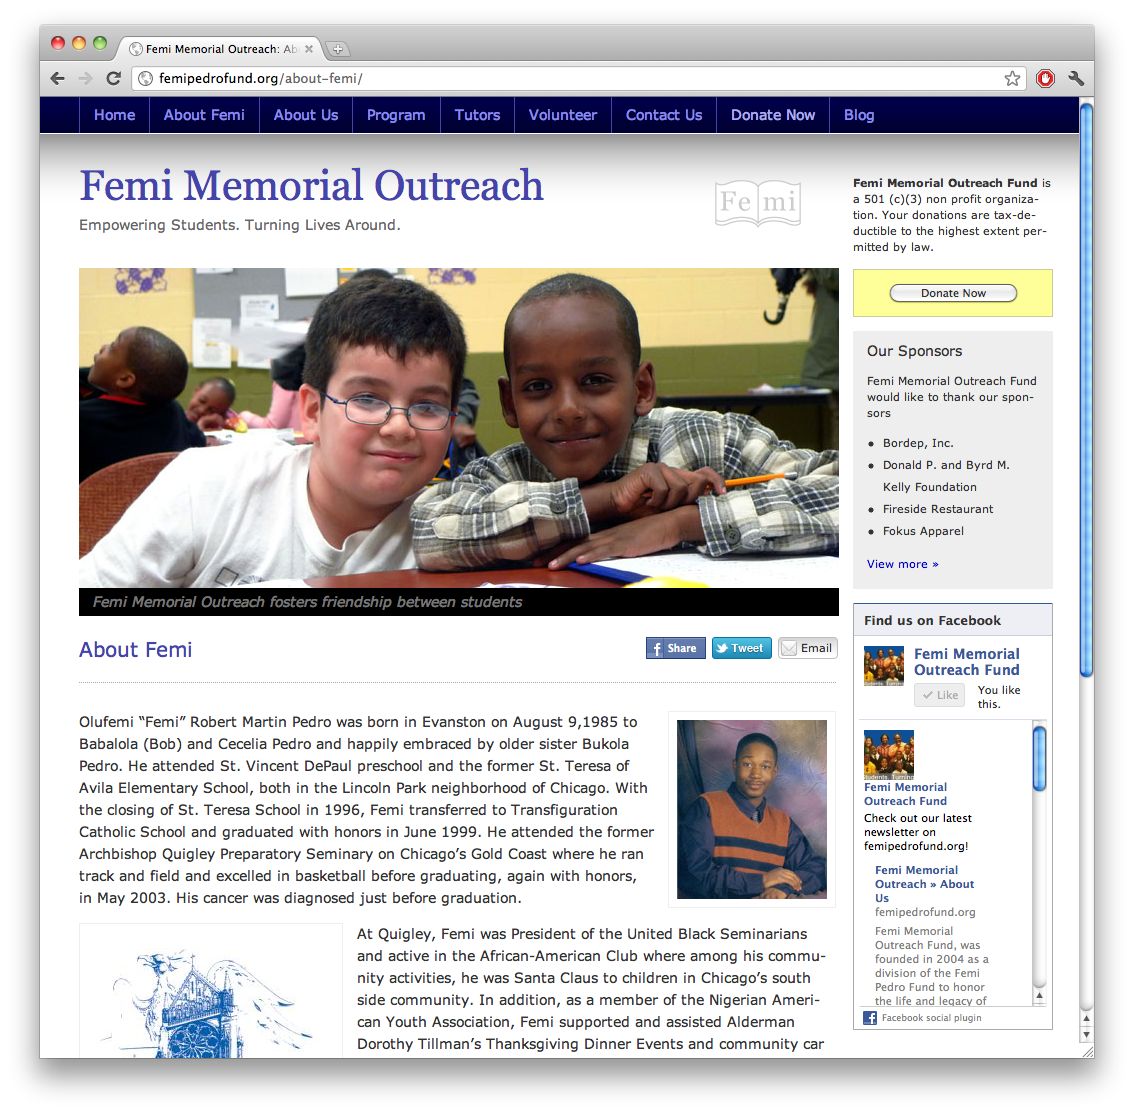 Femi Memorial Outreach Fund